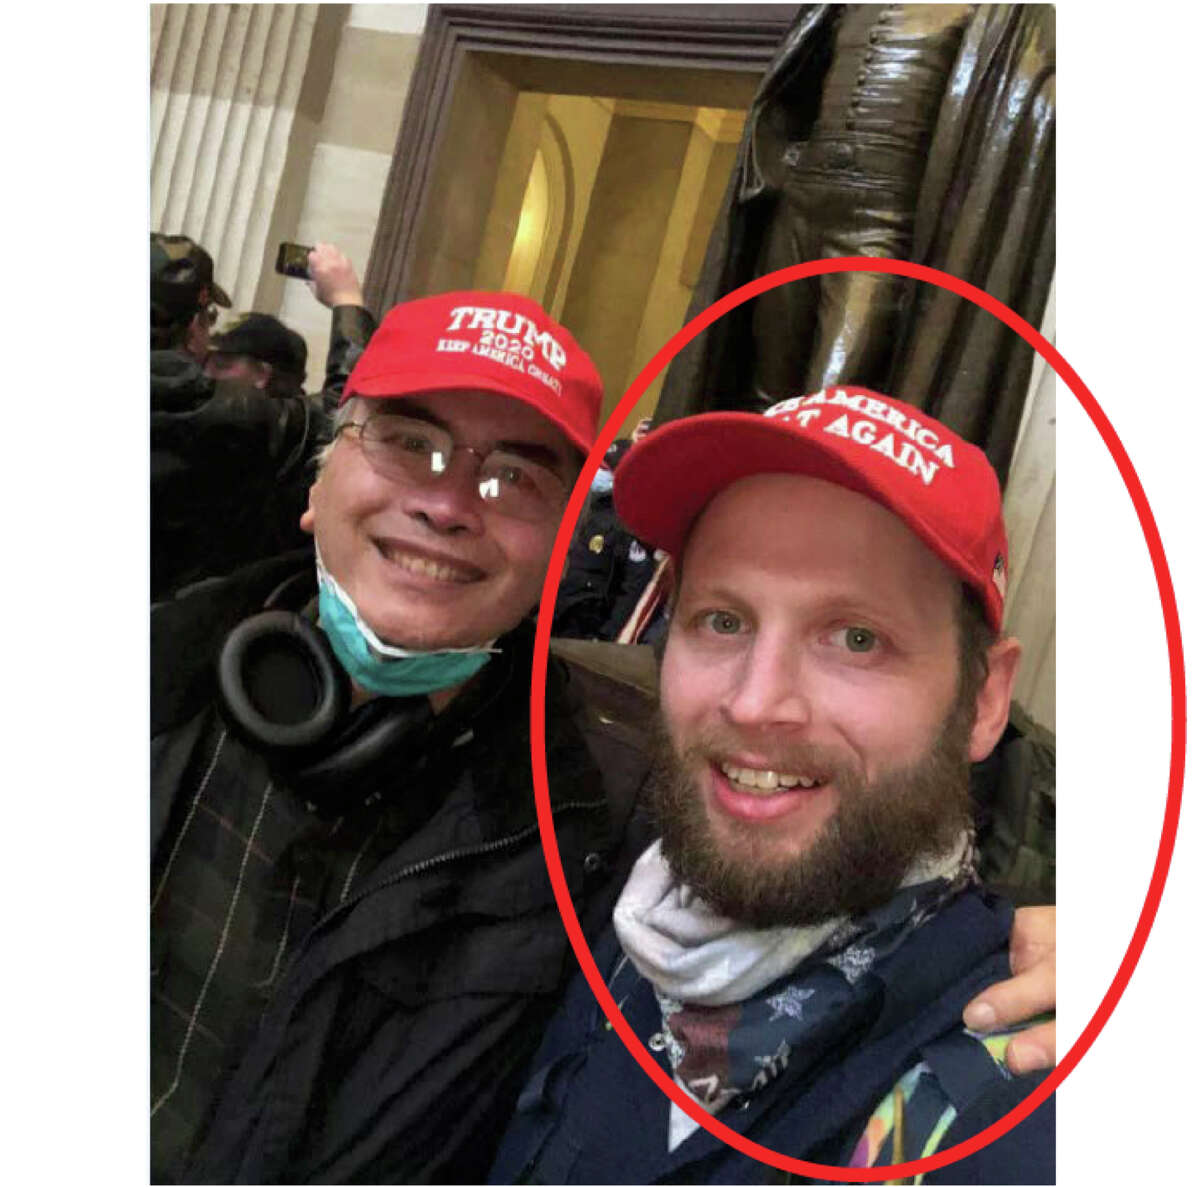 Garret Miller of Richardson, Texas, posted selfies he took at the Capitol on Facebook, federal authorities say.